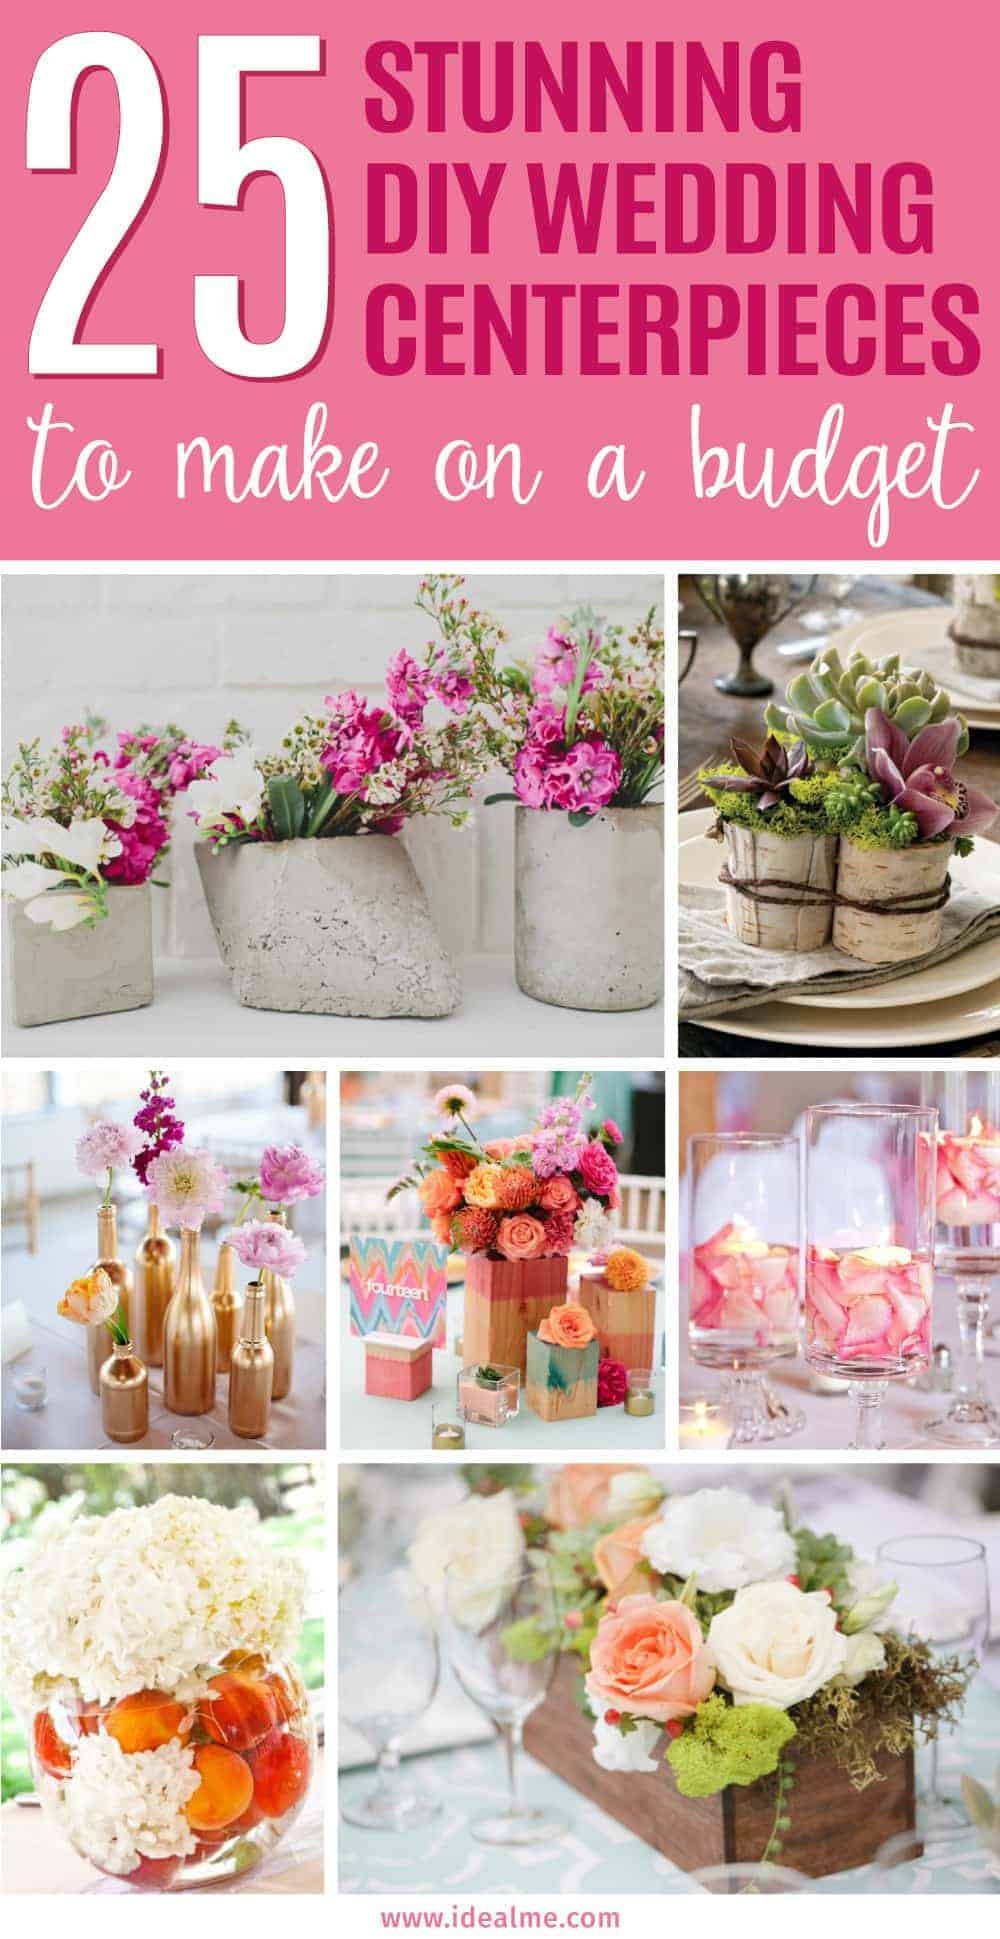 Best ideas about DIY Centerpiece Wedding . Save or Pin 25 Stunning DIY Wedding Centerpieces to Make on a Bud Now.